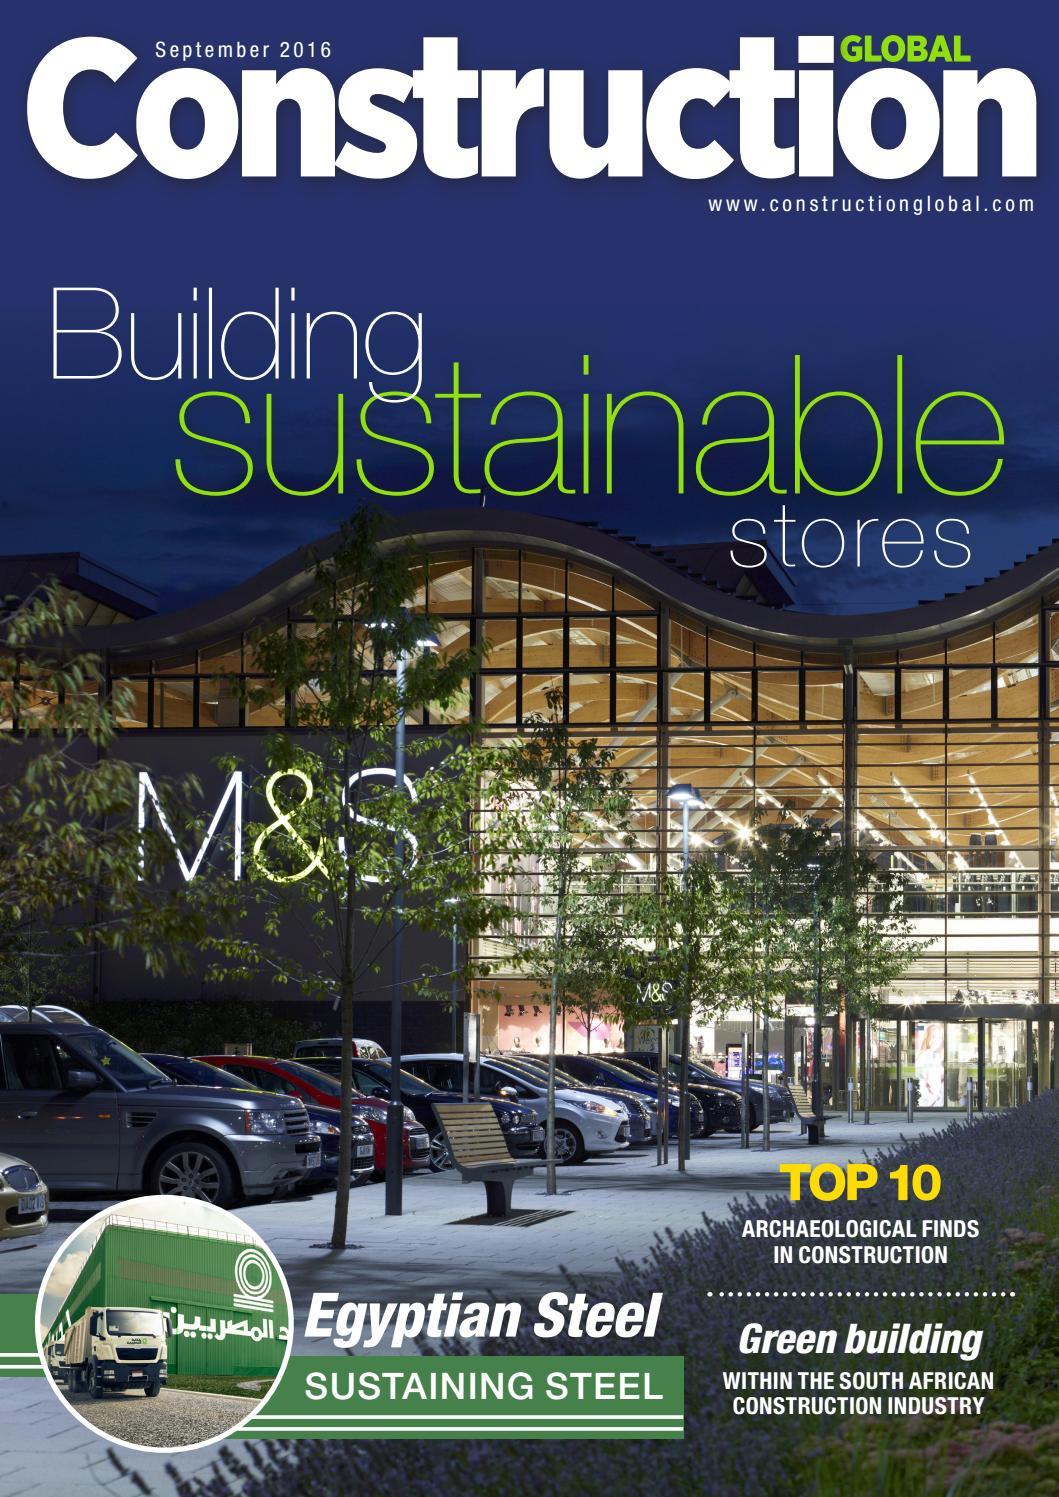 Construction Global Magazine September 2016 By